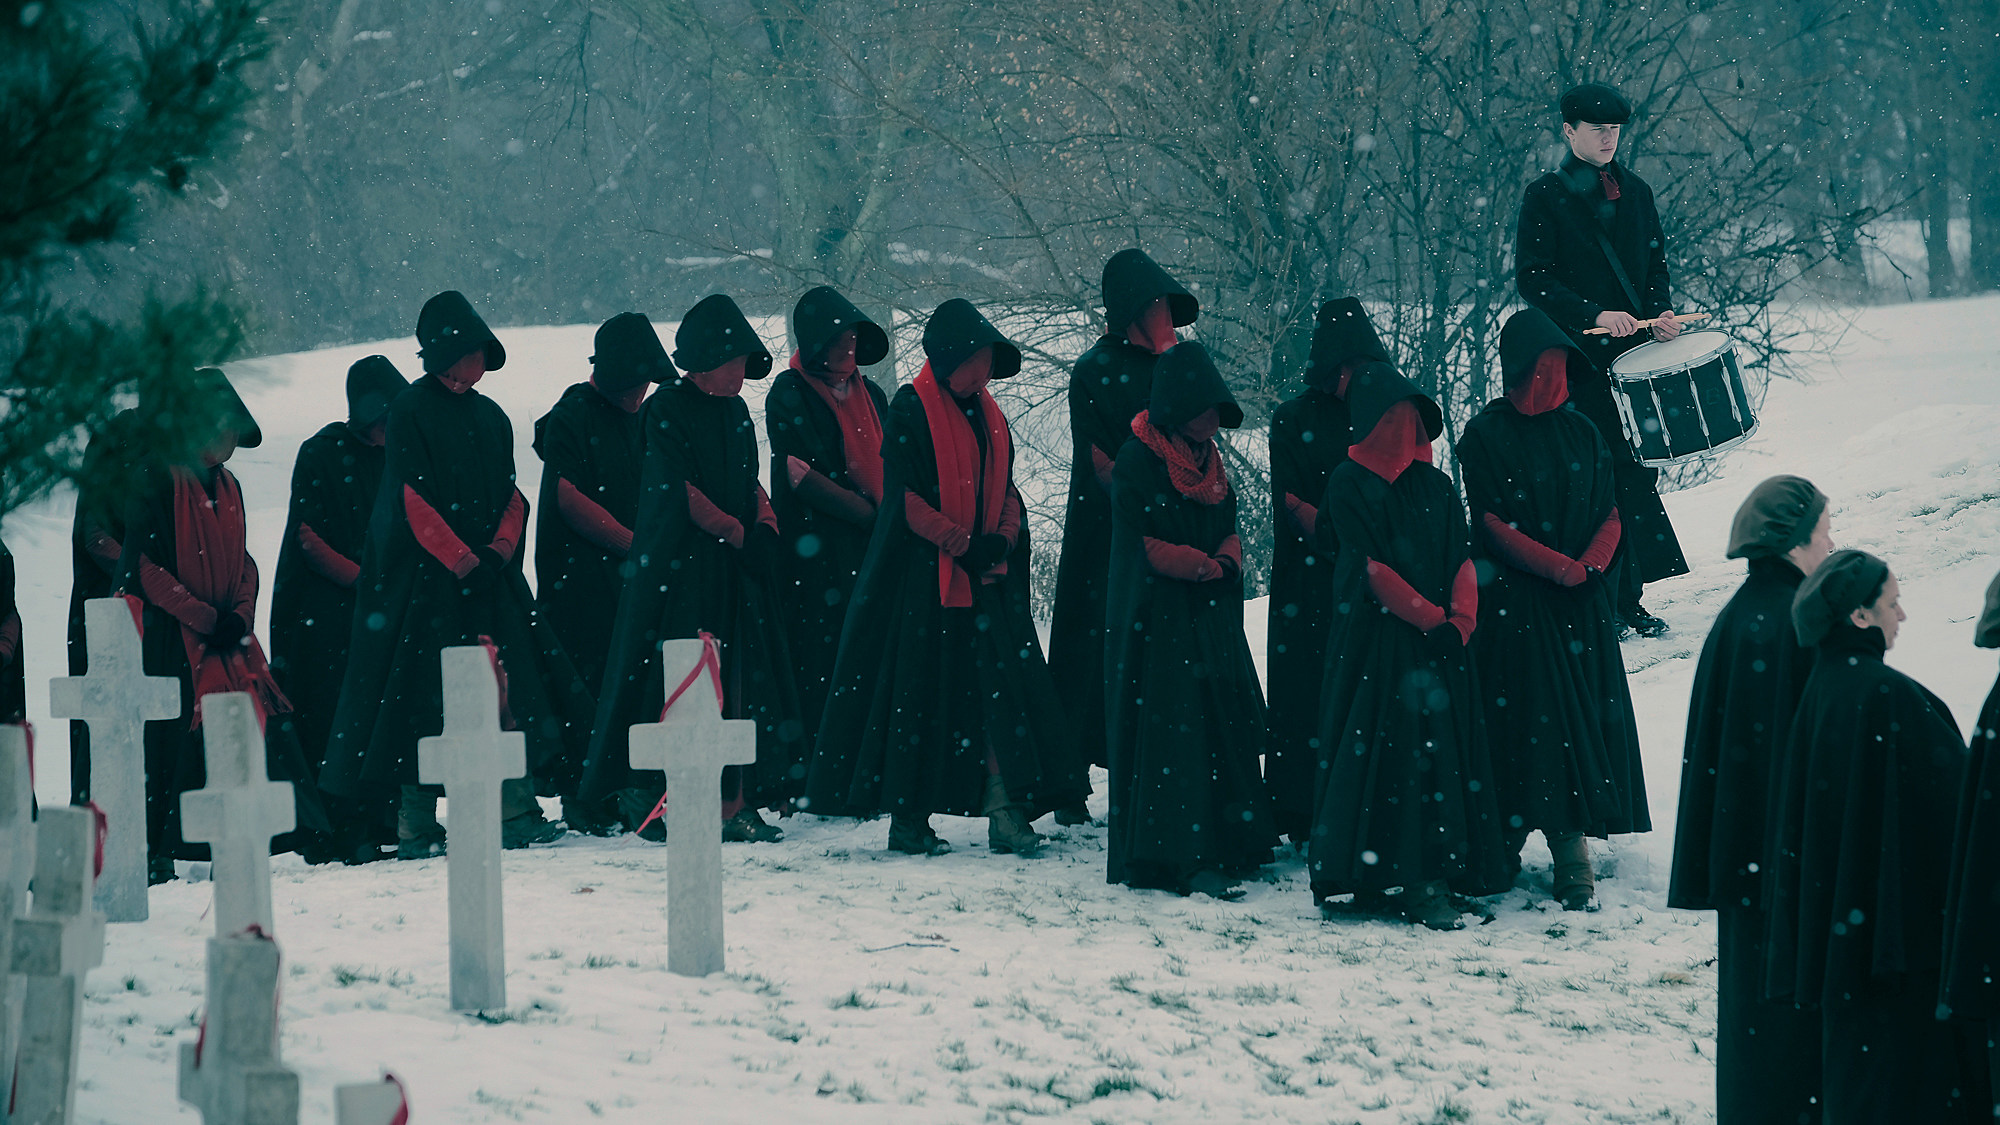 handmaid's tale season 3 - photo #50